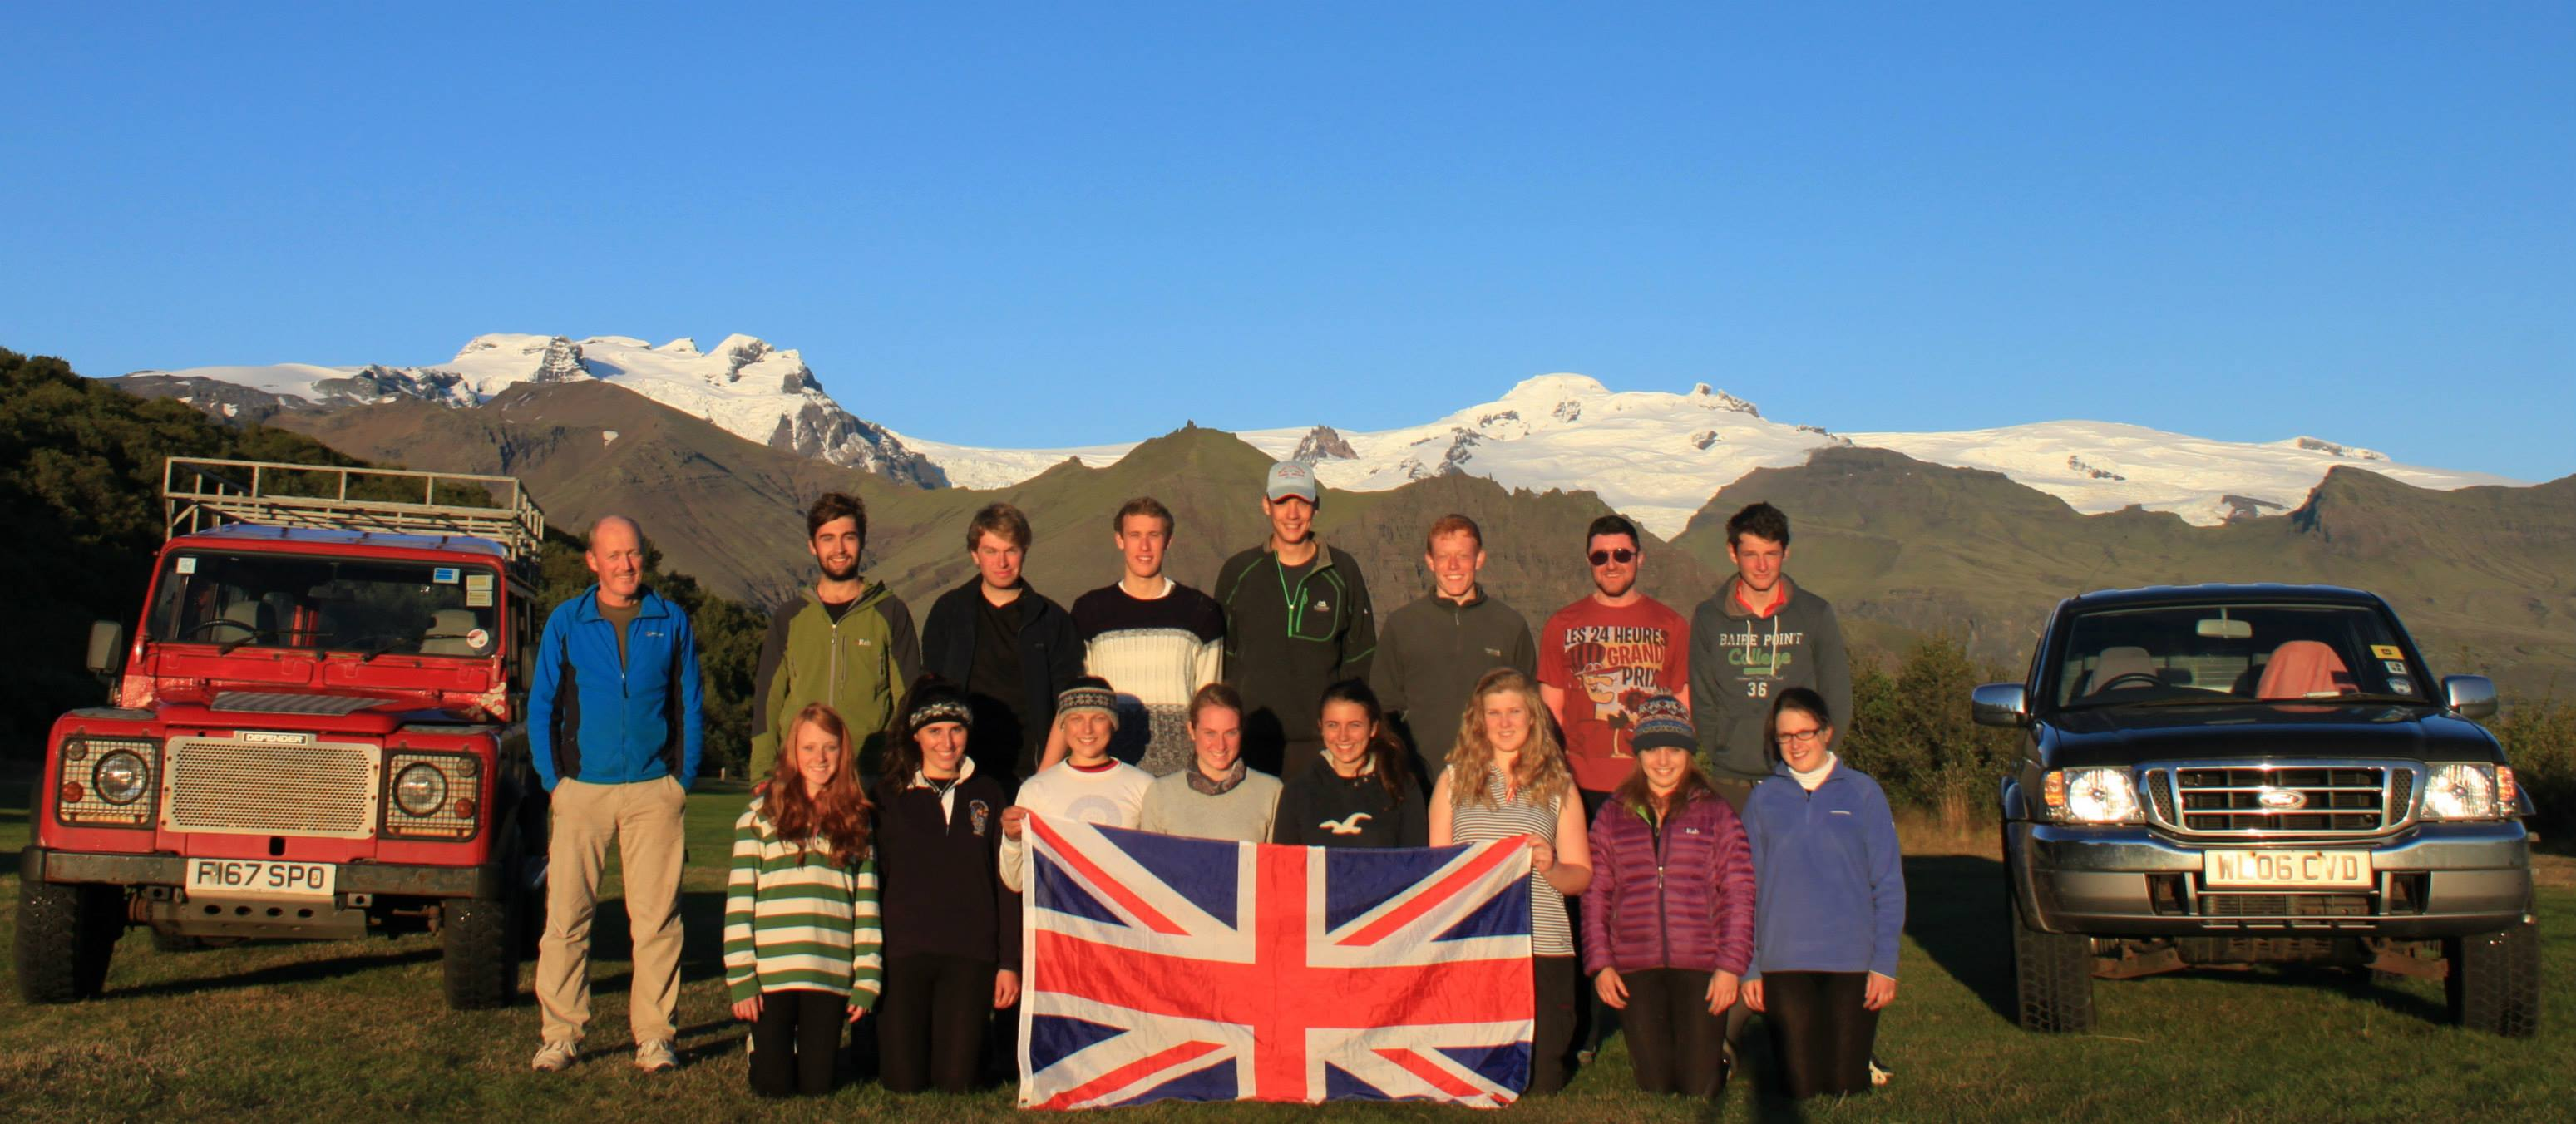 Iceland Expedition Summer 2013